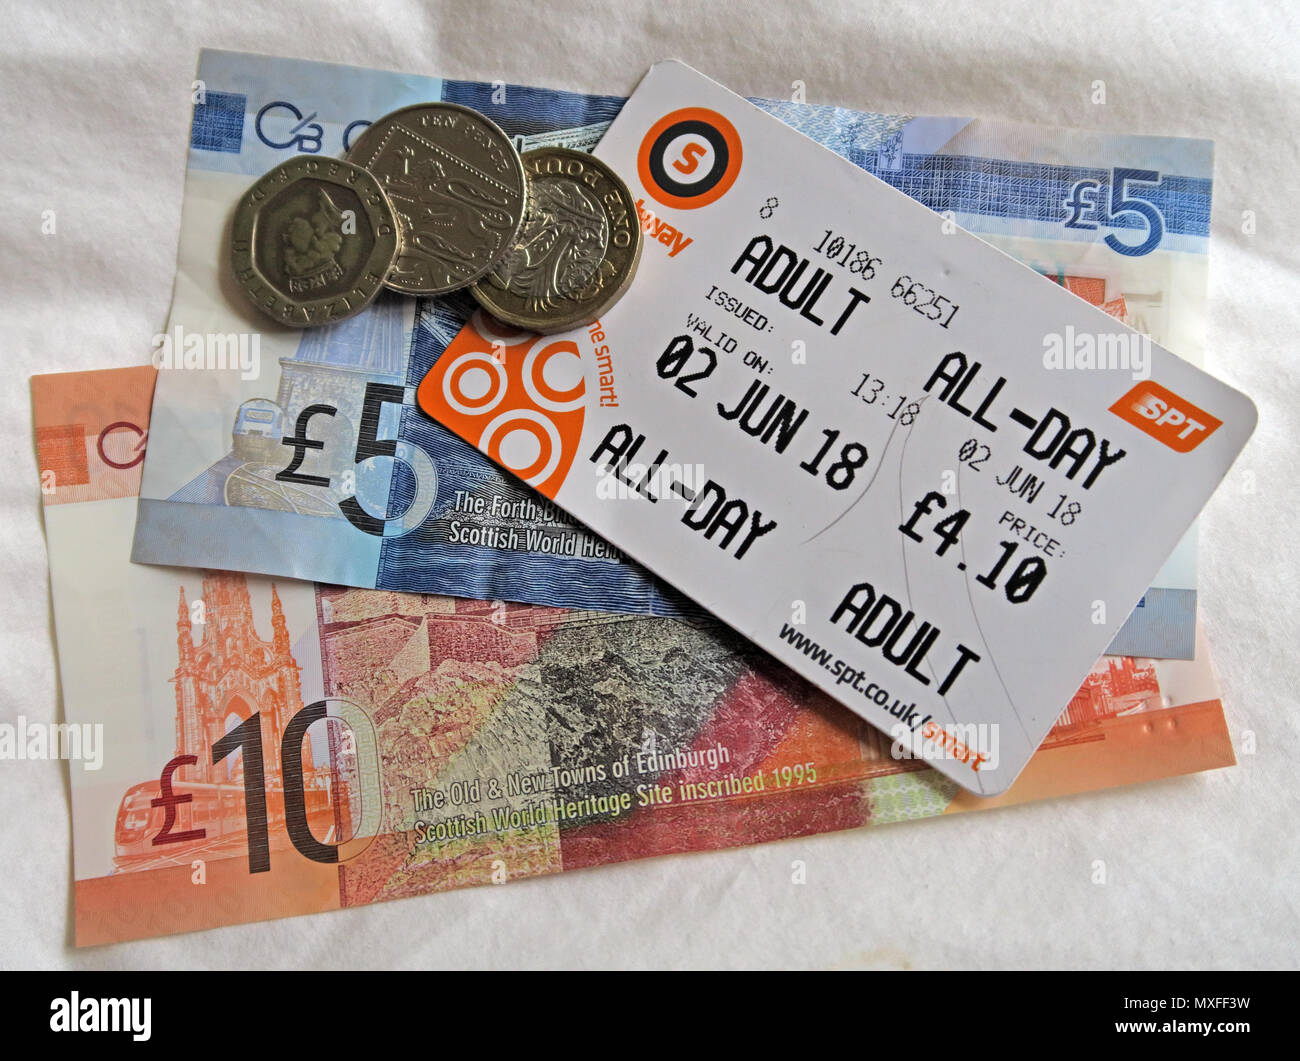 Glasgow Metro SPT Adult All-Day metro travelcard, with Scottish Sterling Notes Currency)- - Stock Image